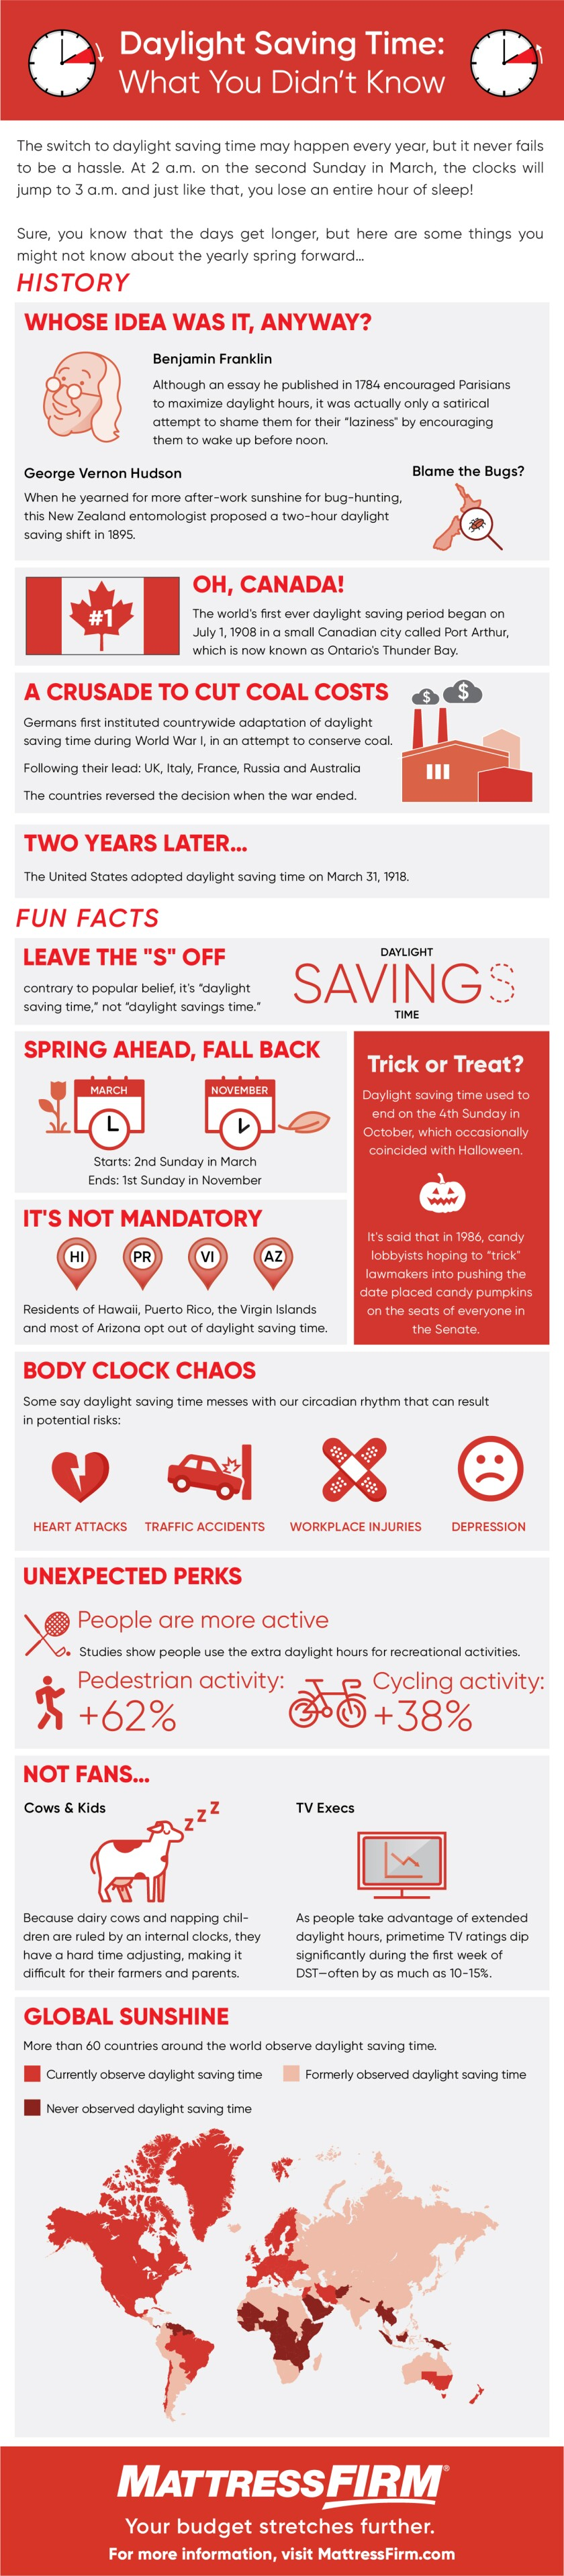 infographic-daylight-saving-time-what-you-didn-27t-know-d4-01.jpg